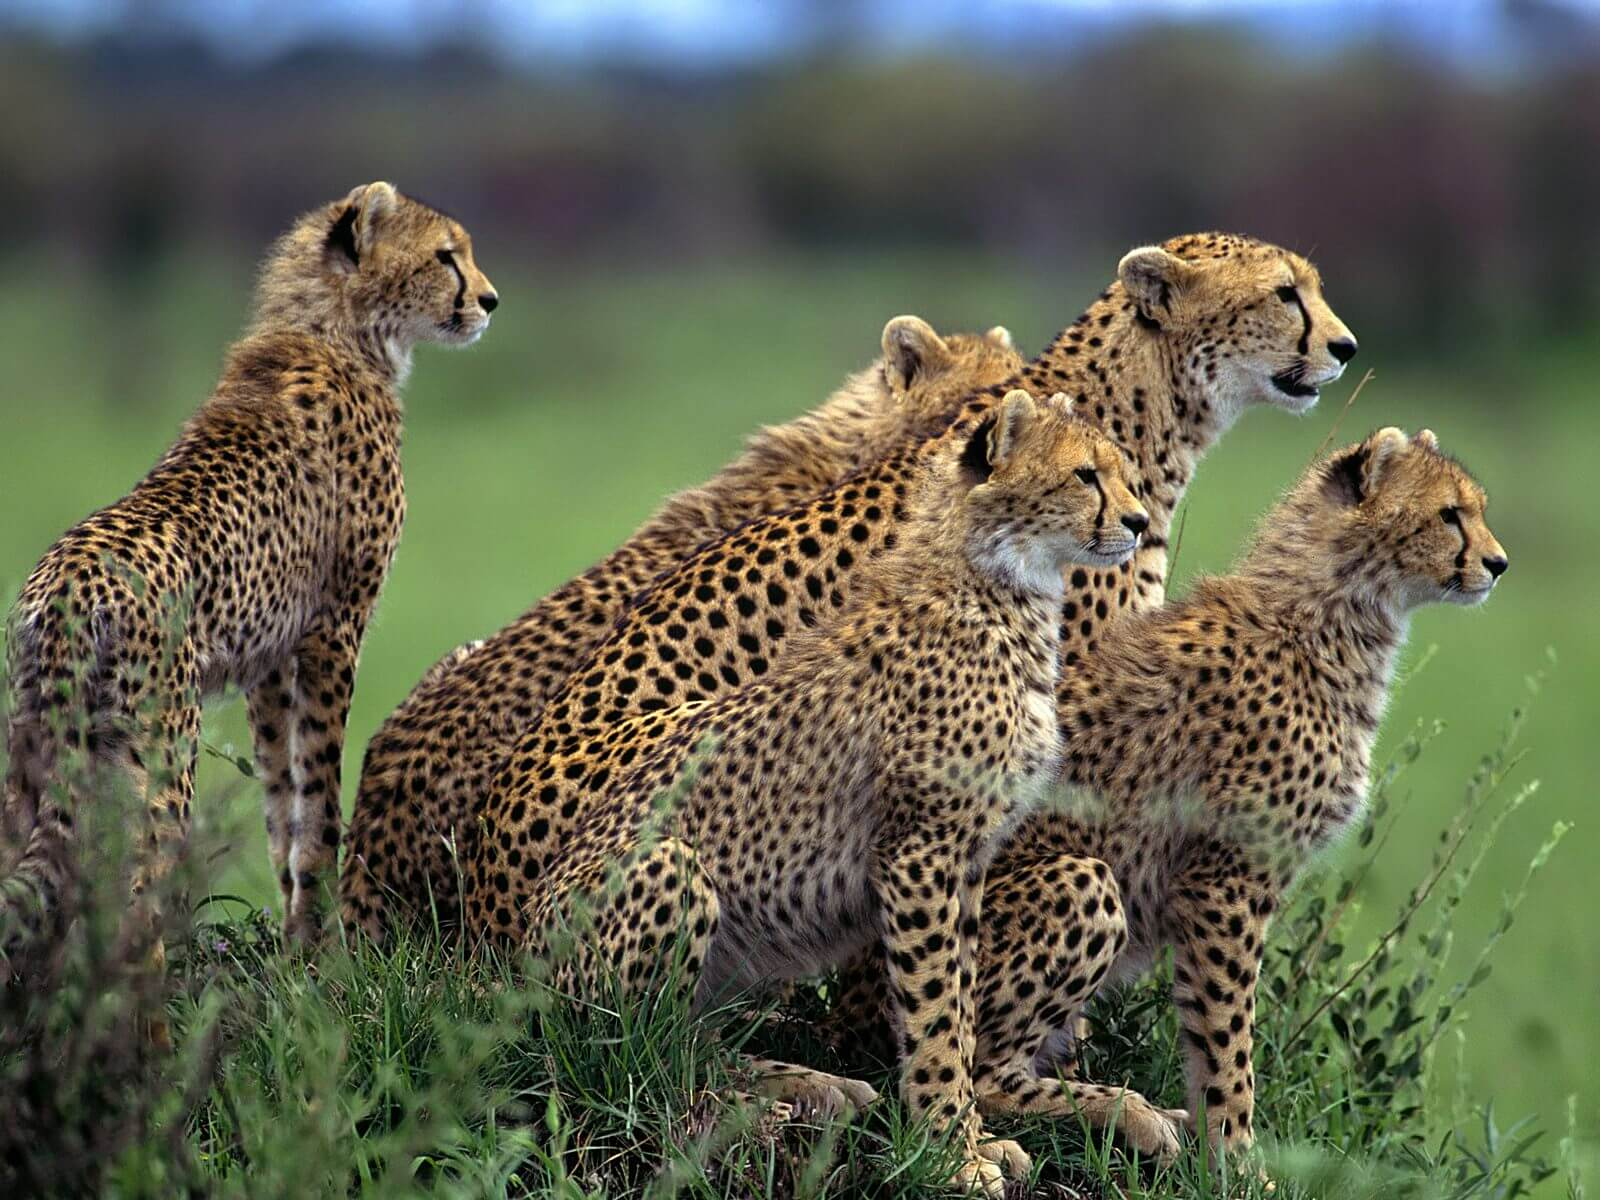 Cheetah Facts & Info, Pictures, Video and Much More about